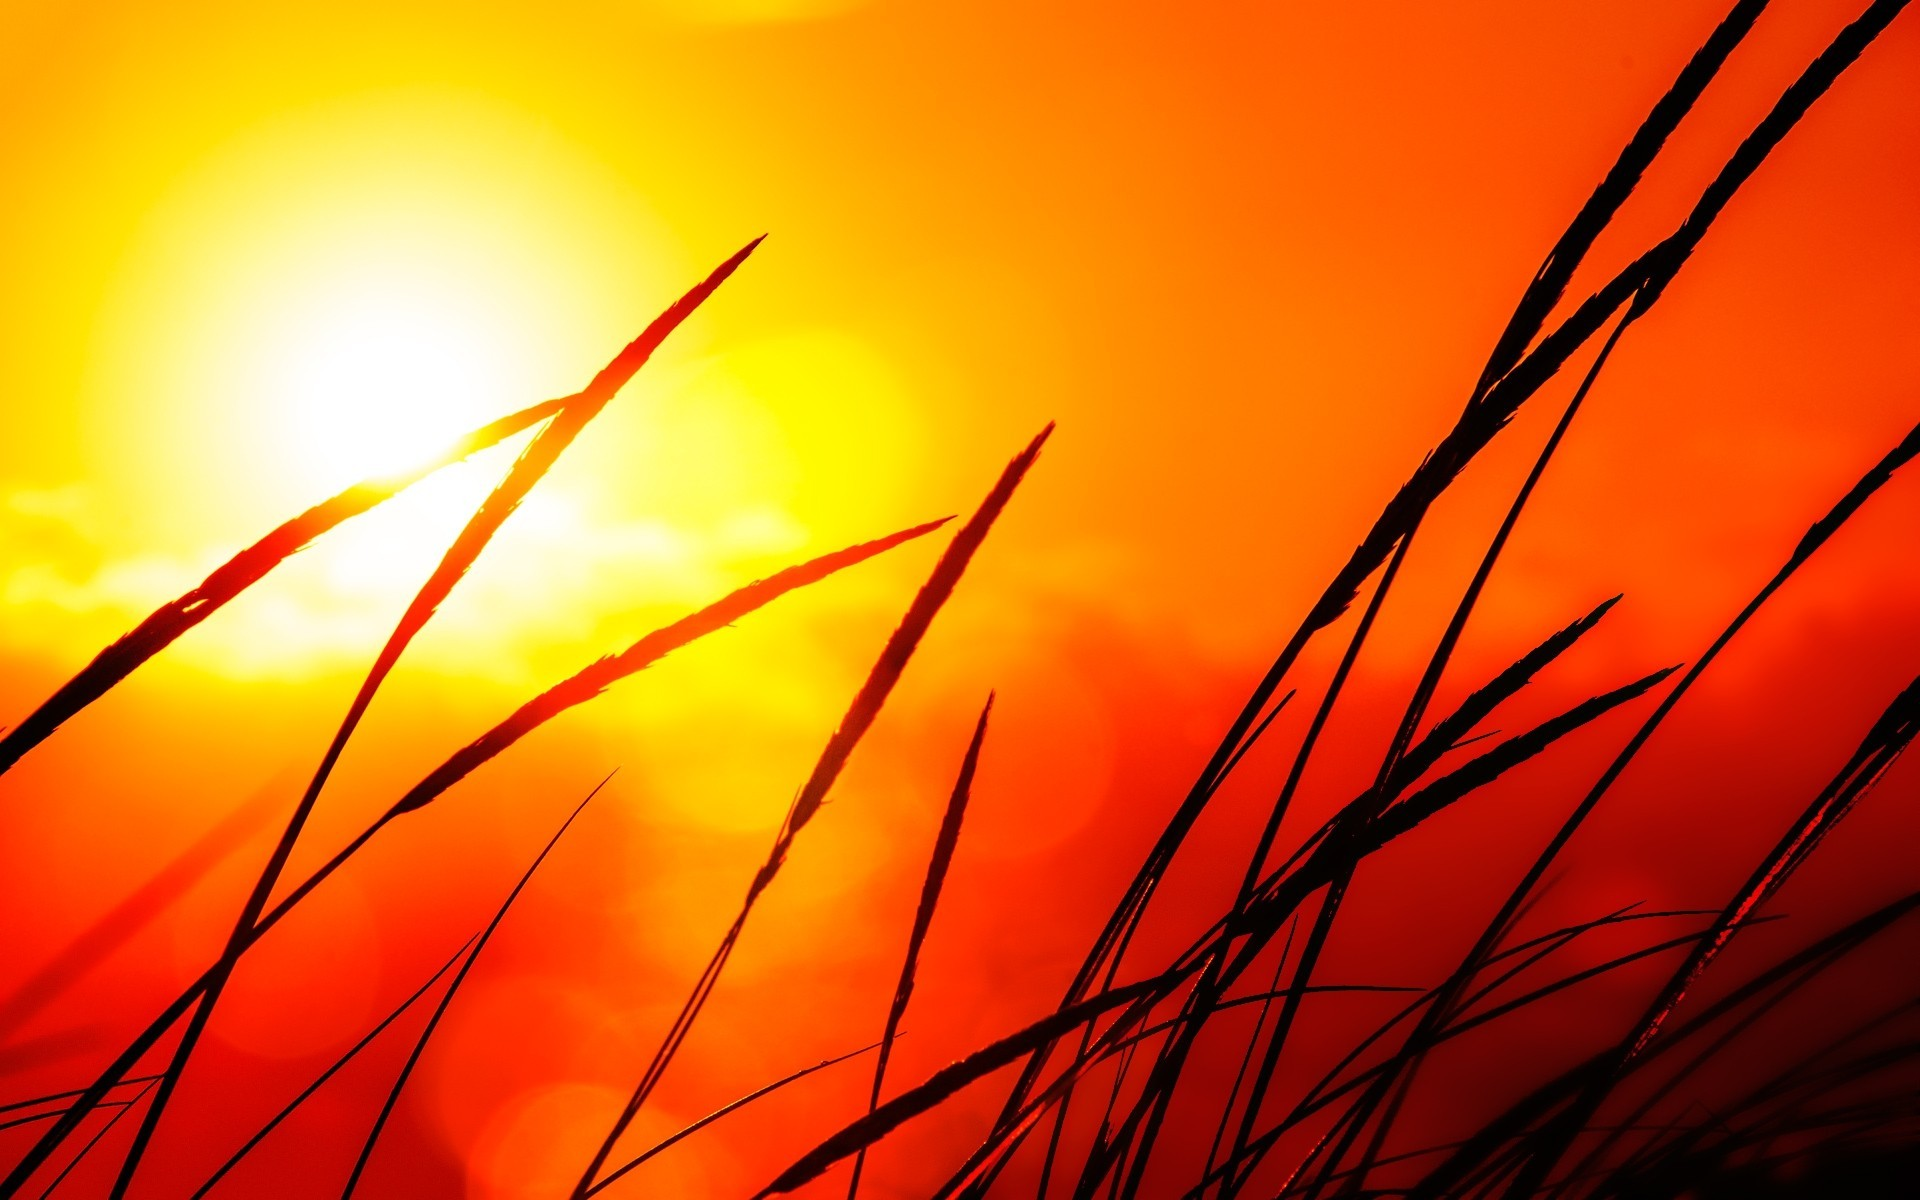 sunlight wallpaper orange red